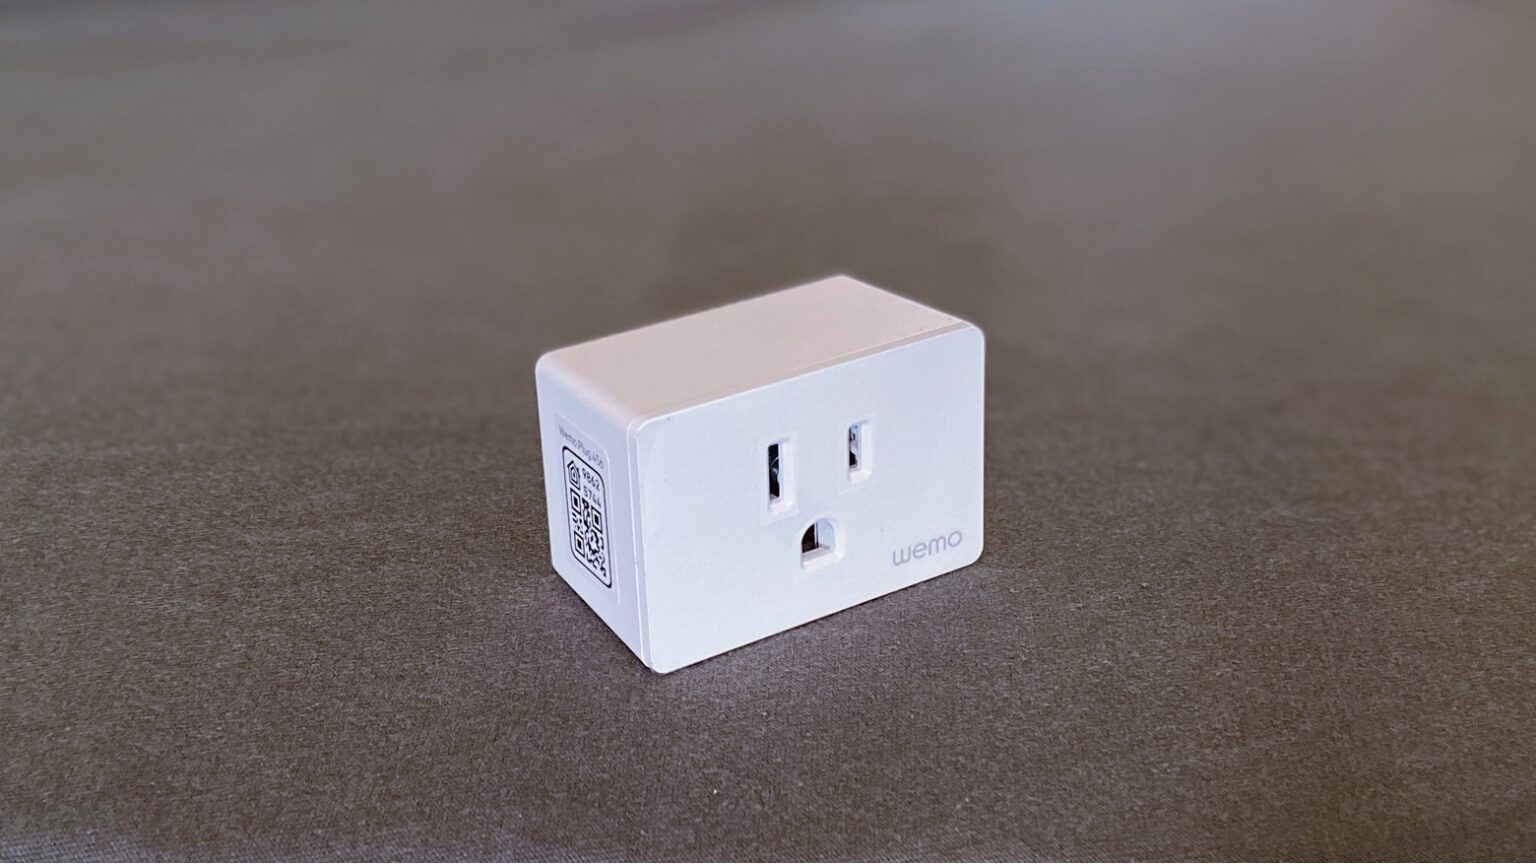 Belkin Wemo WiFi Smart Plug review